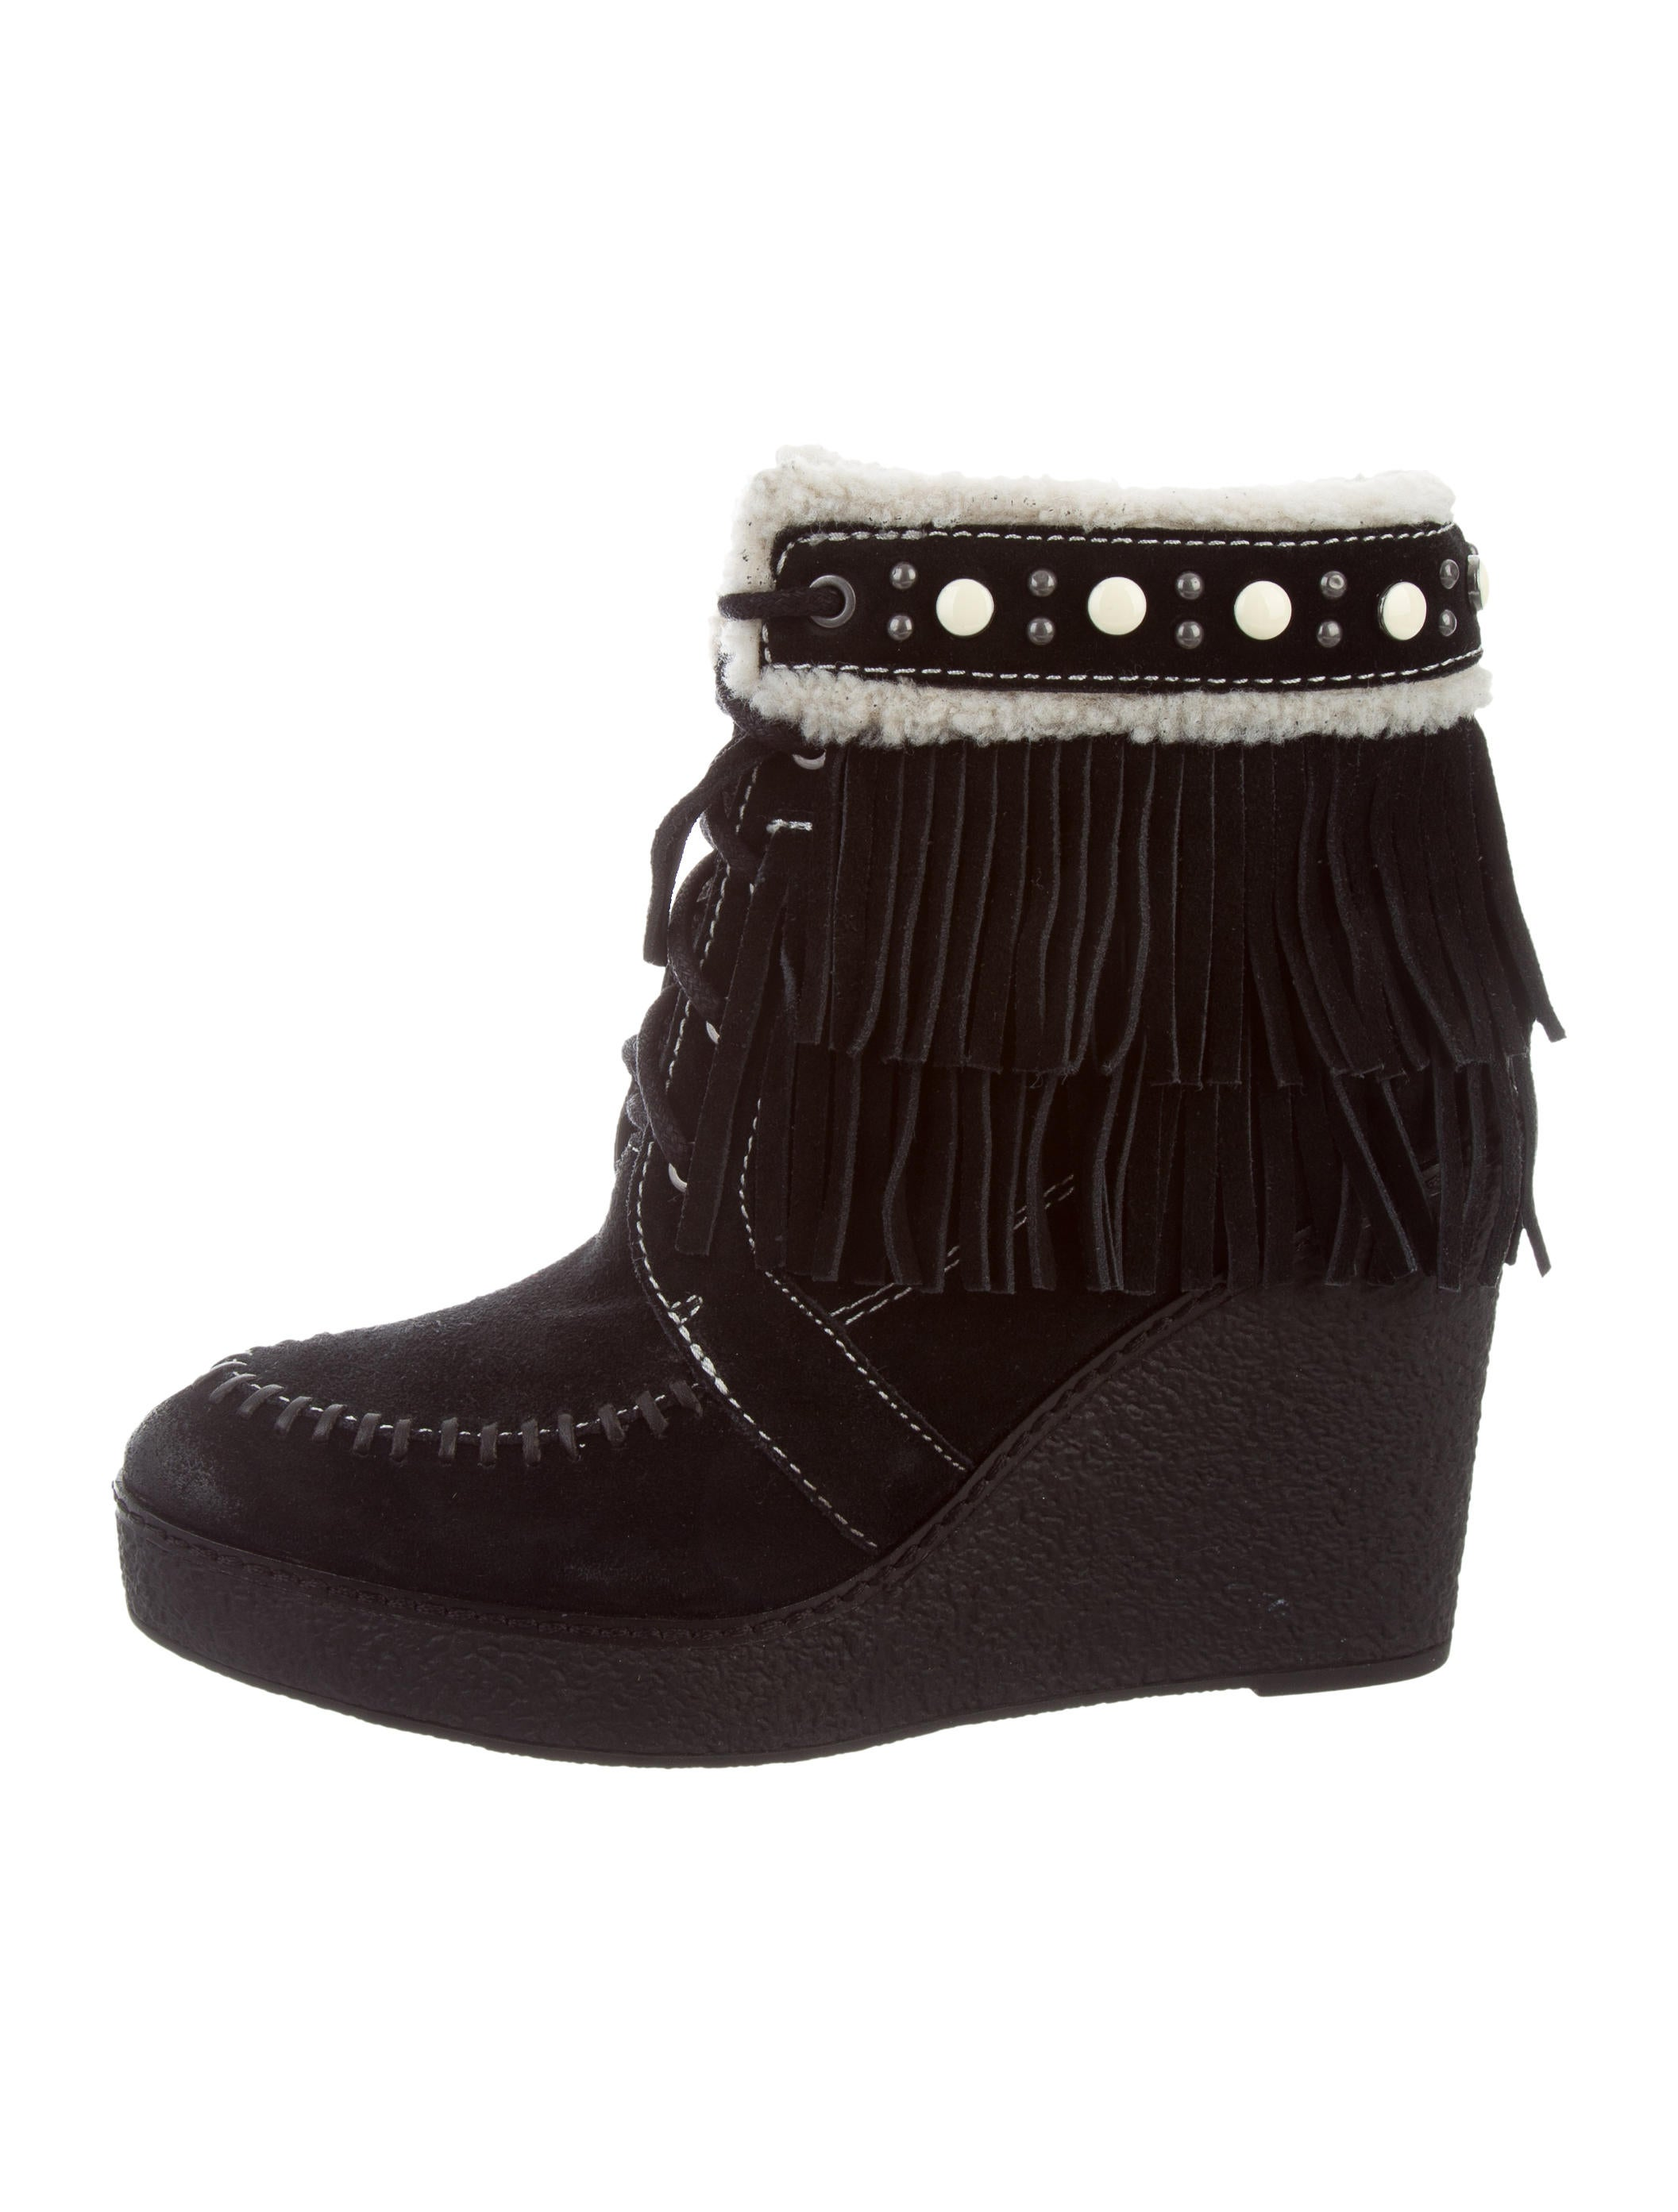 0353c1aa4 Sam Edelman Fringe-Trimmed Wedge Ankle Boots - Shoes - W2W20198 ...